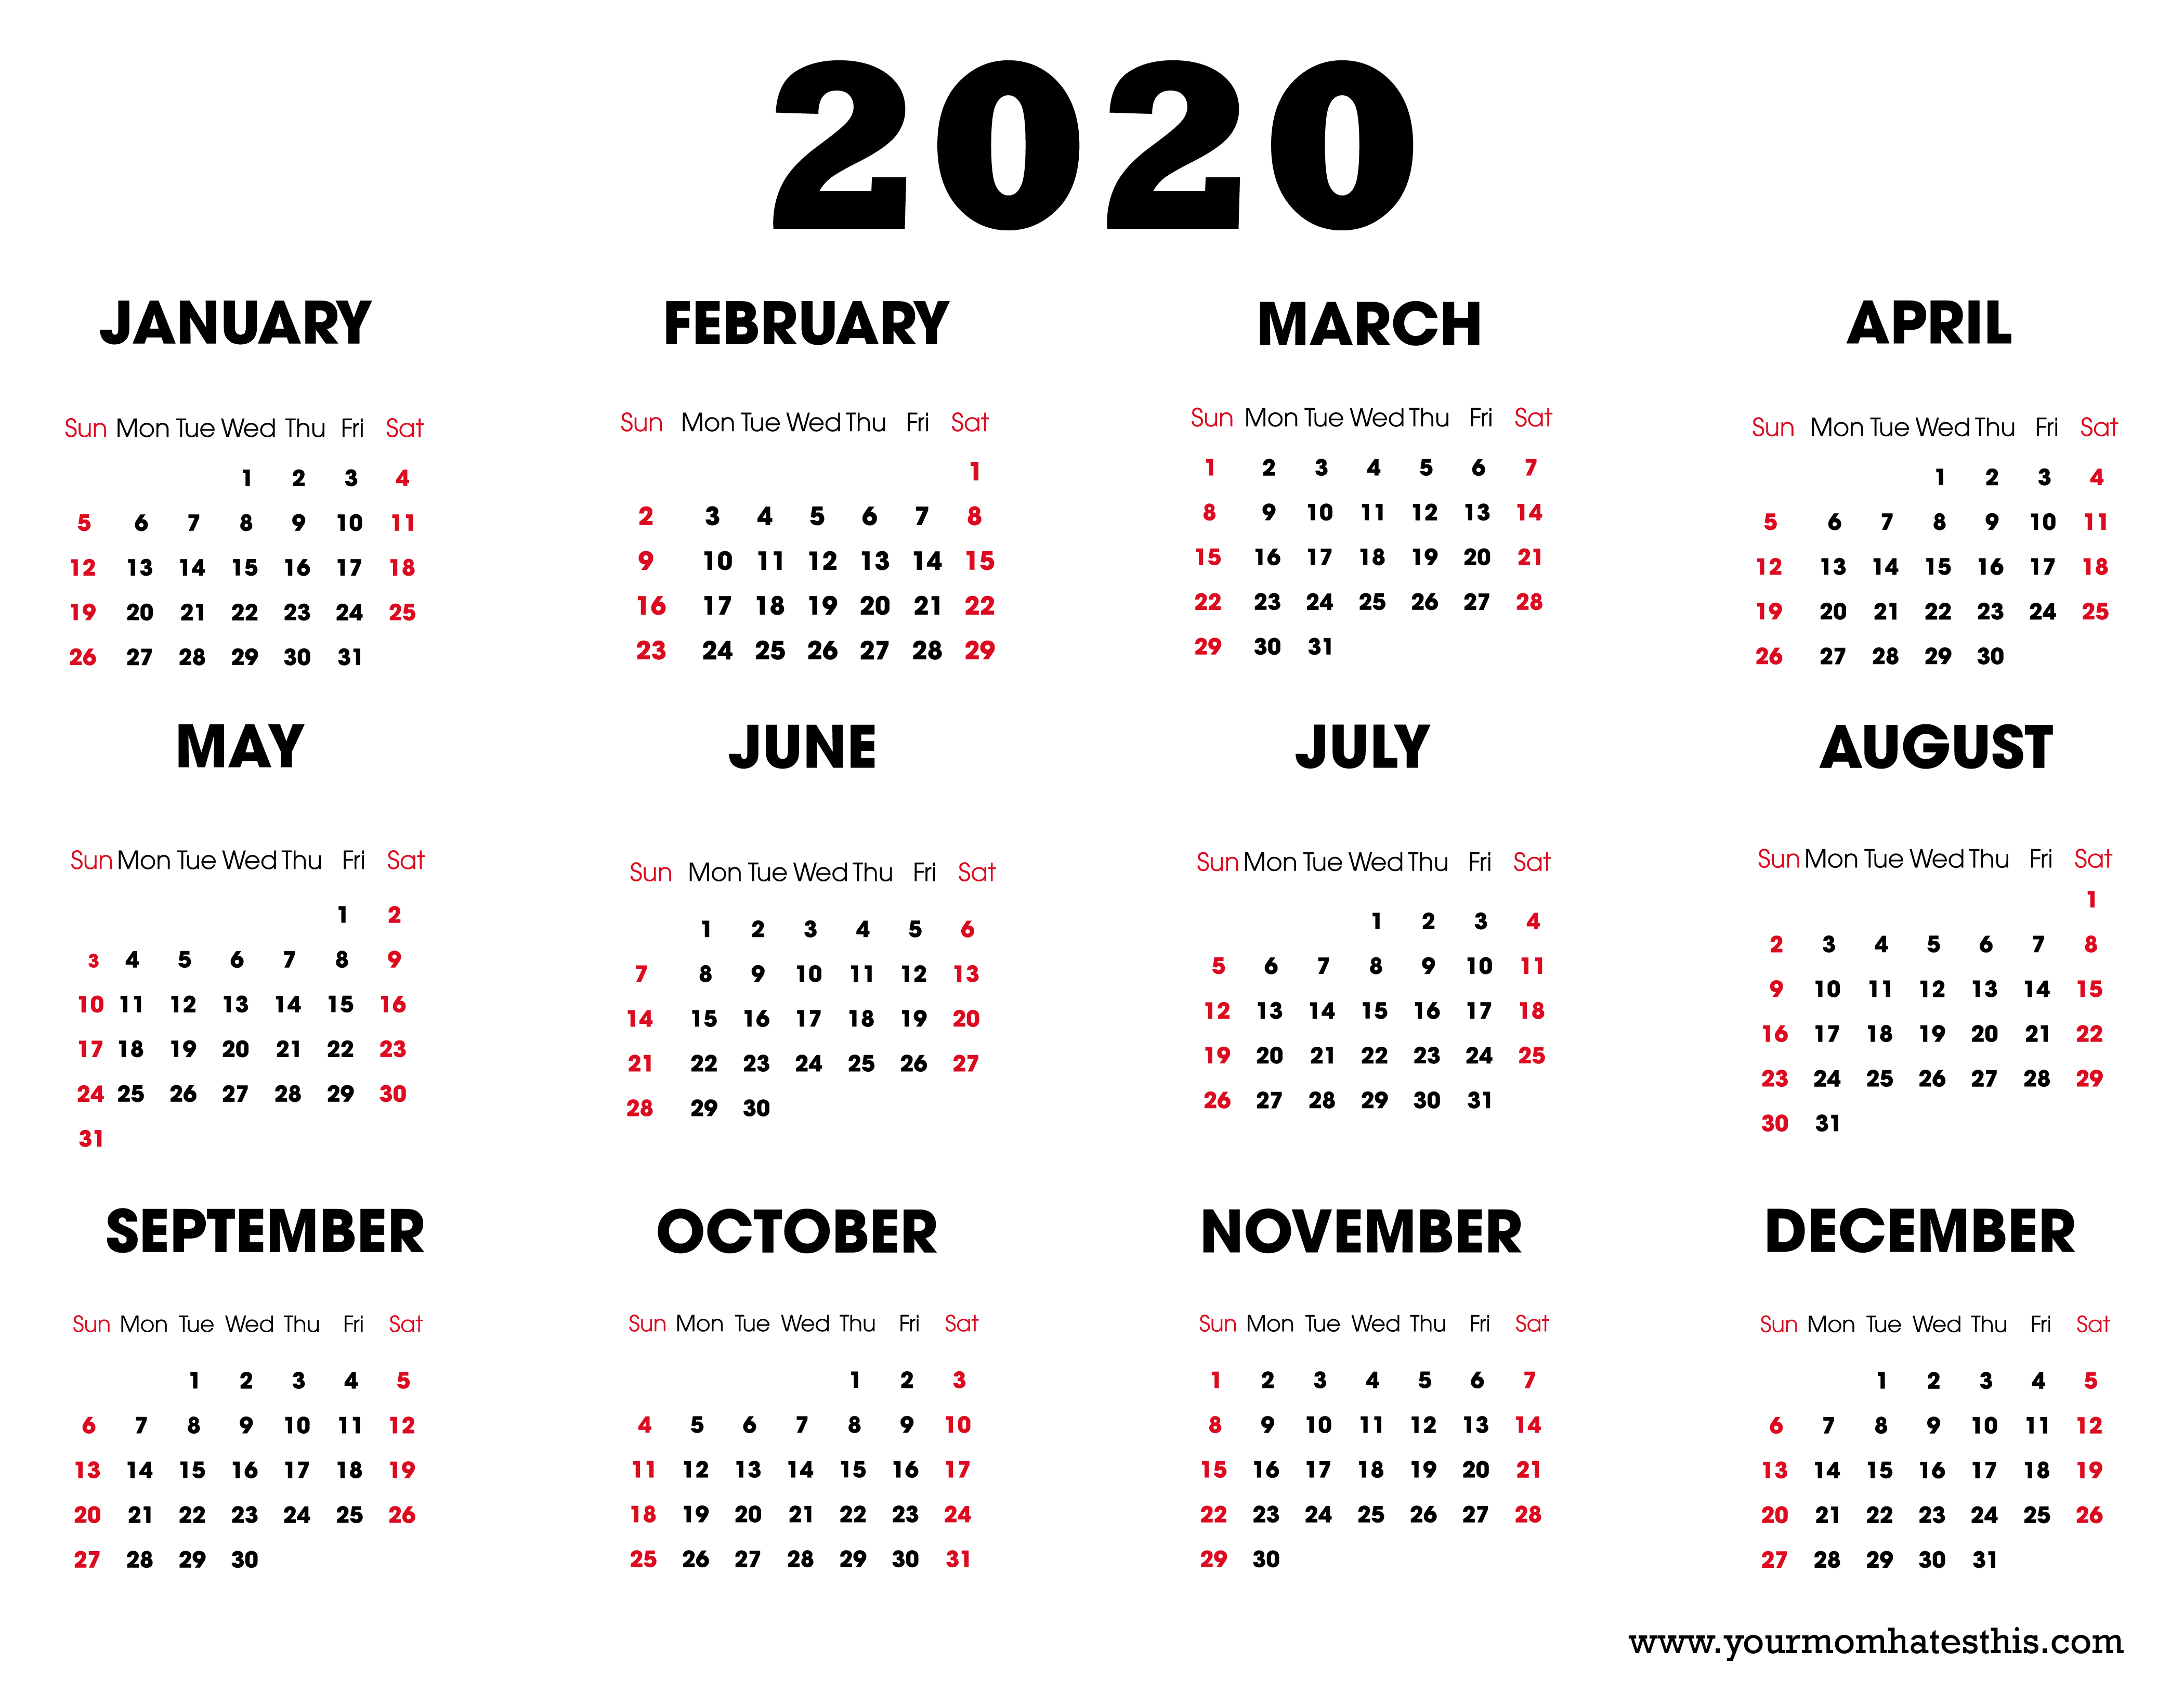 2020 Printable Calendar - Download Free Blank Templates - intended for 2020 Calendars To Print Without Downloading